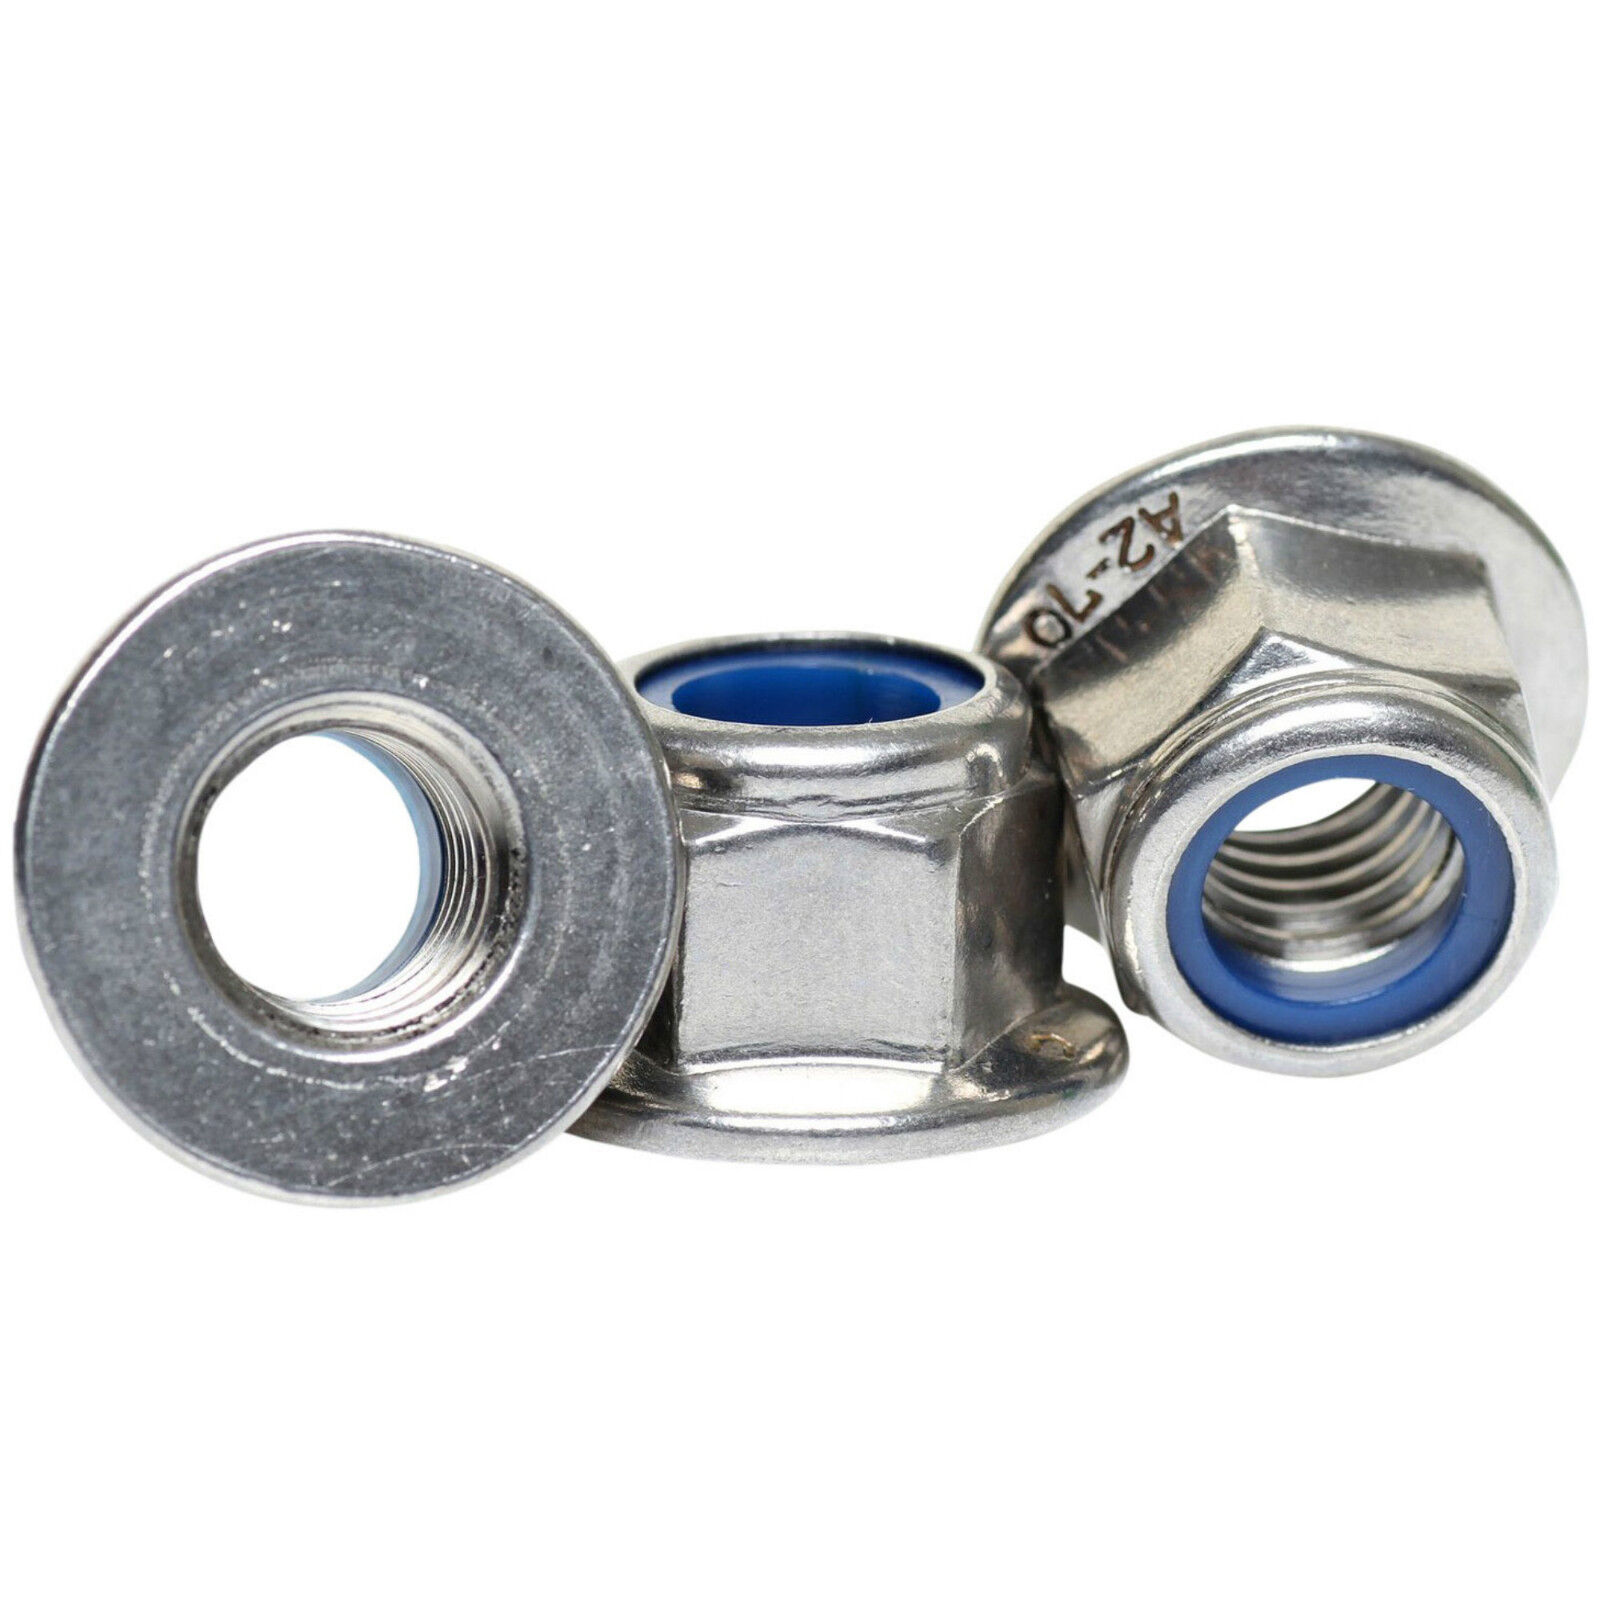 5 Bolt Base A2 Stainless Steel Half Lock Nuts Jam Nuts M5 X 0.8mm Pitch